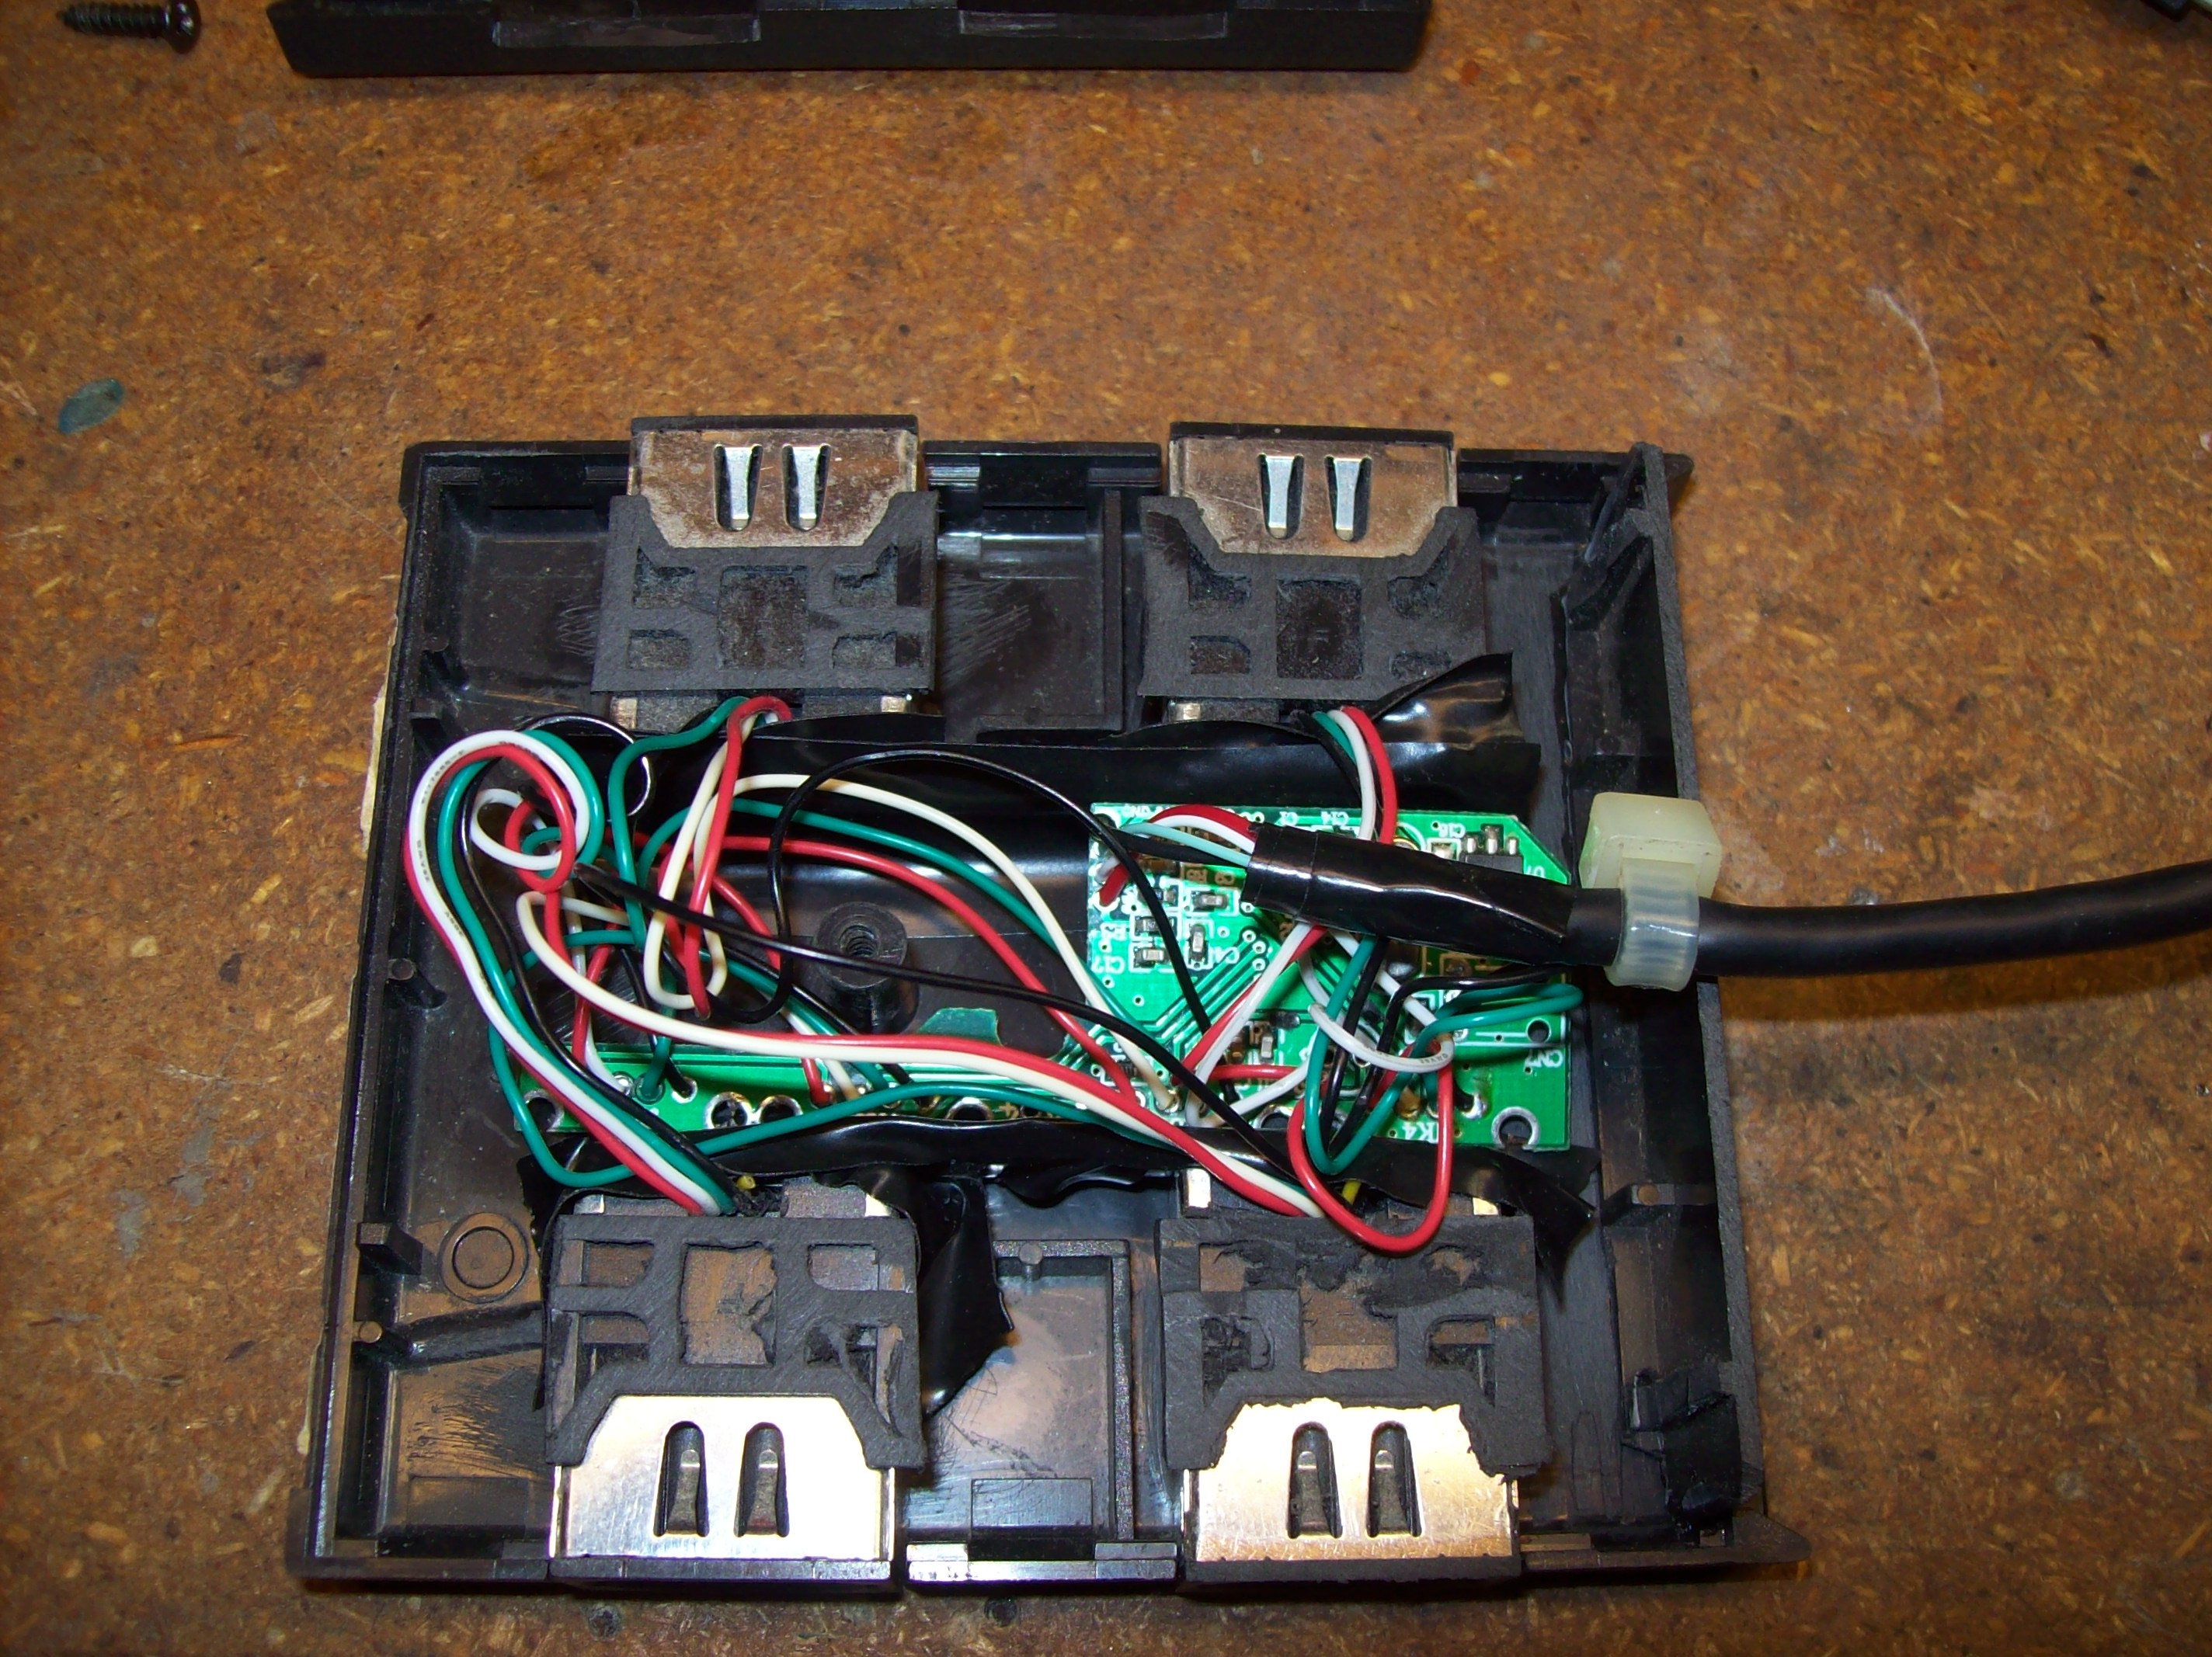 Xbox To Pc 4 Player Adapter Dufentech Wiring Your So I Wanted Play Some Mame Games On With Friends But Didnt Have Enough Usb Controllers For It Work Remembered There Was A Driver